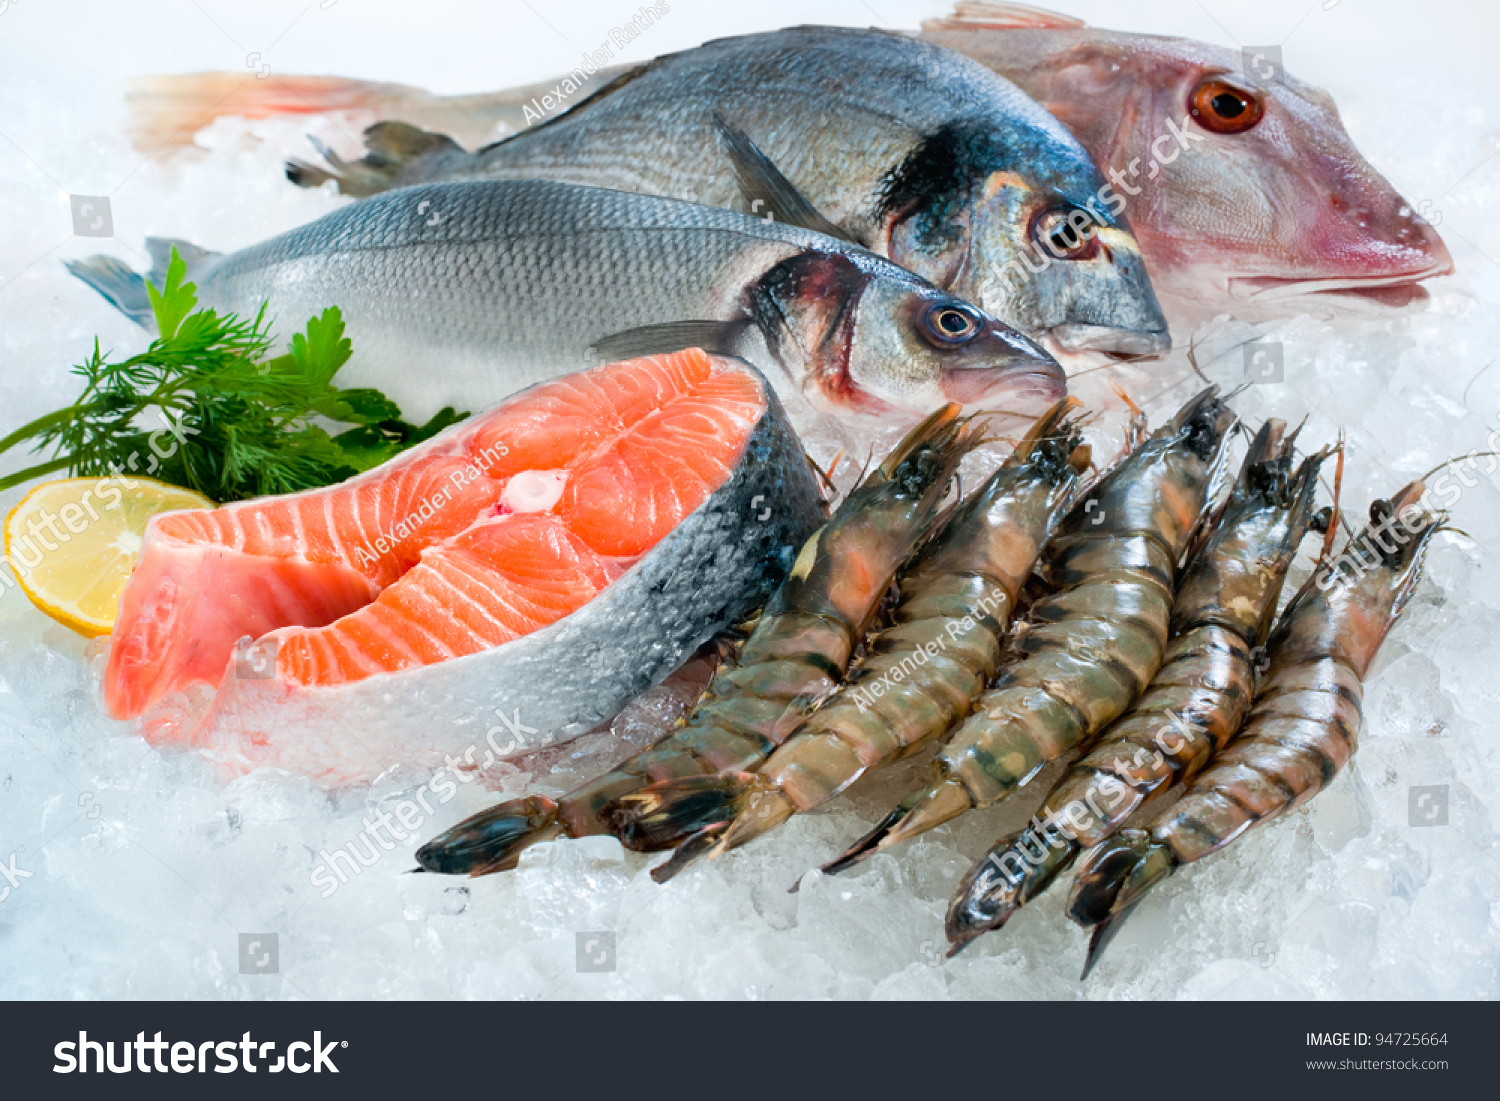 Seafood on ice fish market stock photo 94725664 shutterstock for Fish as food